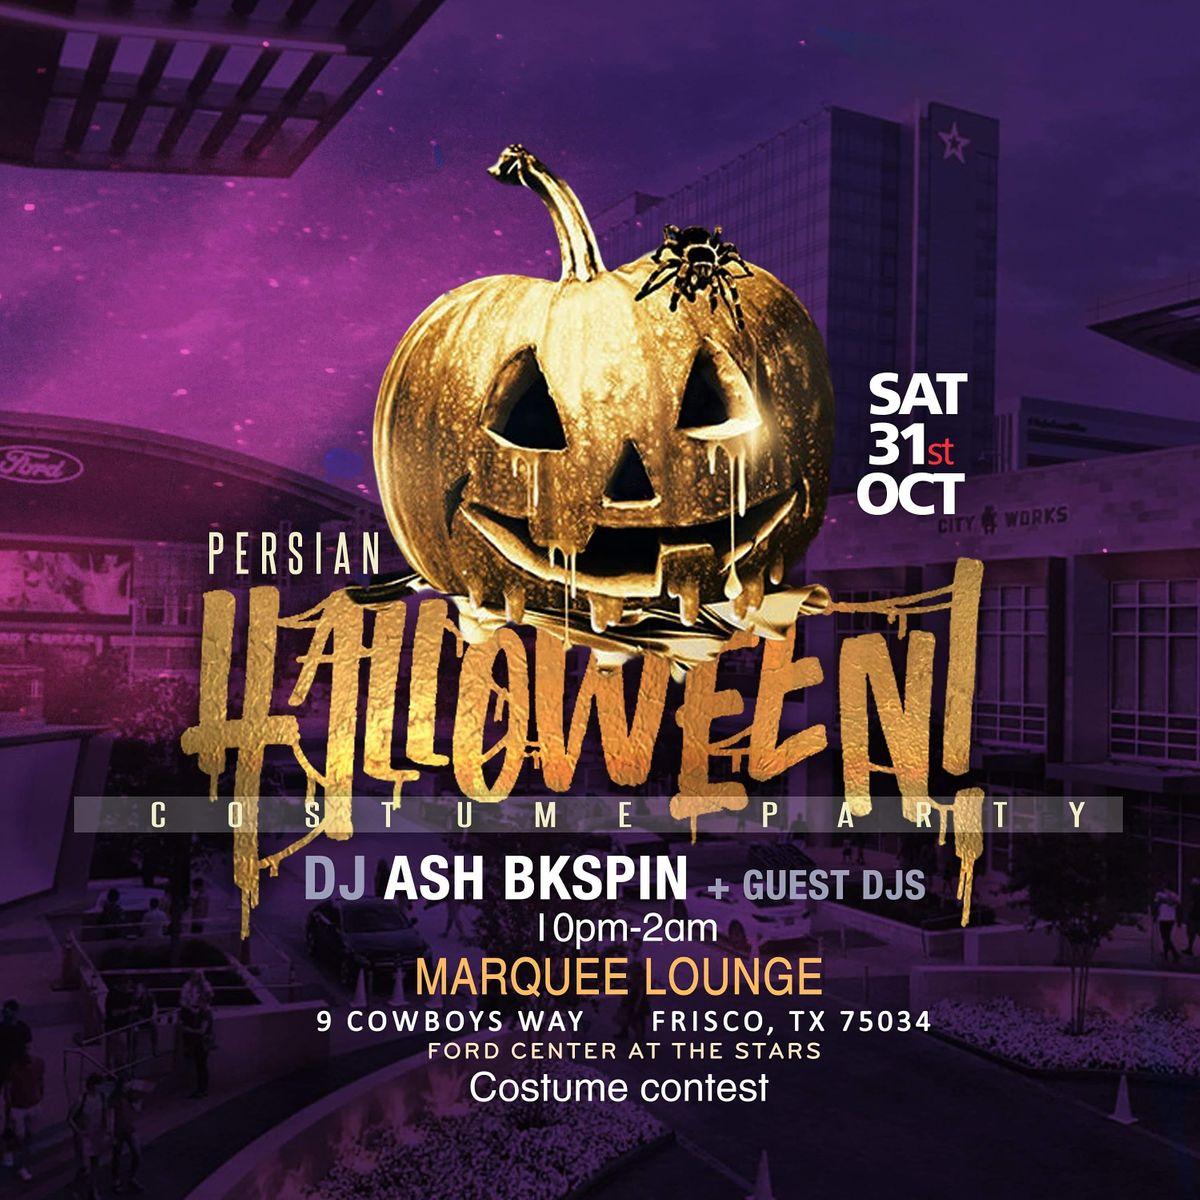 Dallas Texas Halloween Party Oct. 20th 2020 Persian Halloween Party In Dallas TX , Sat Oct 31 2020 at 07:00 pm